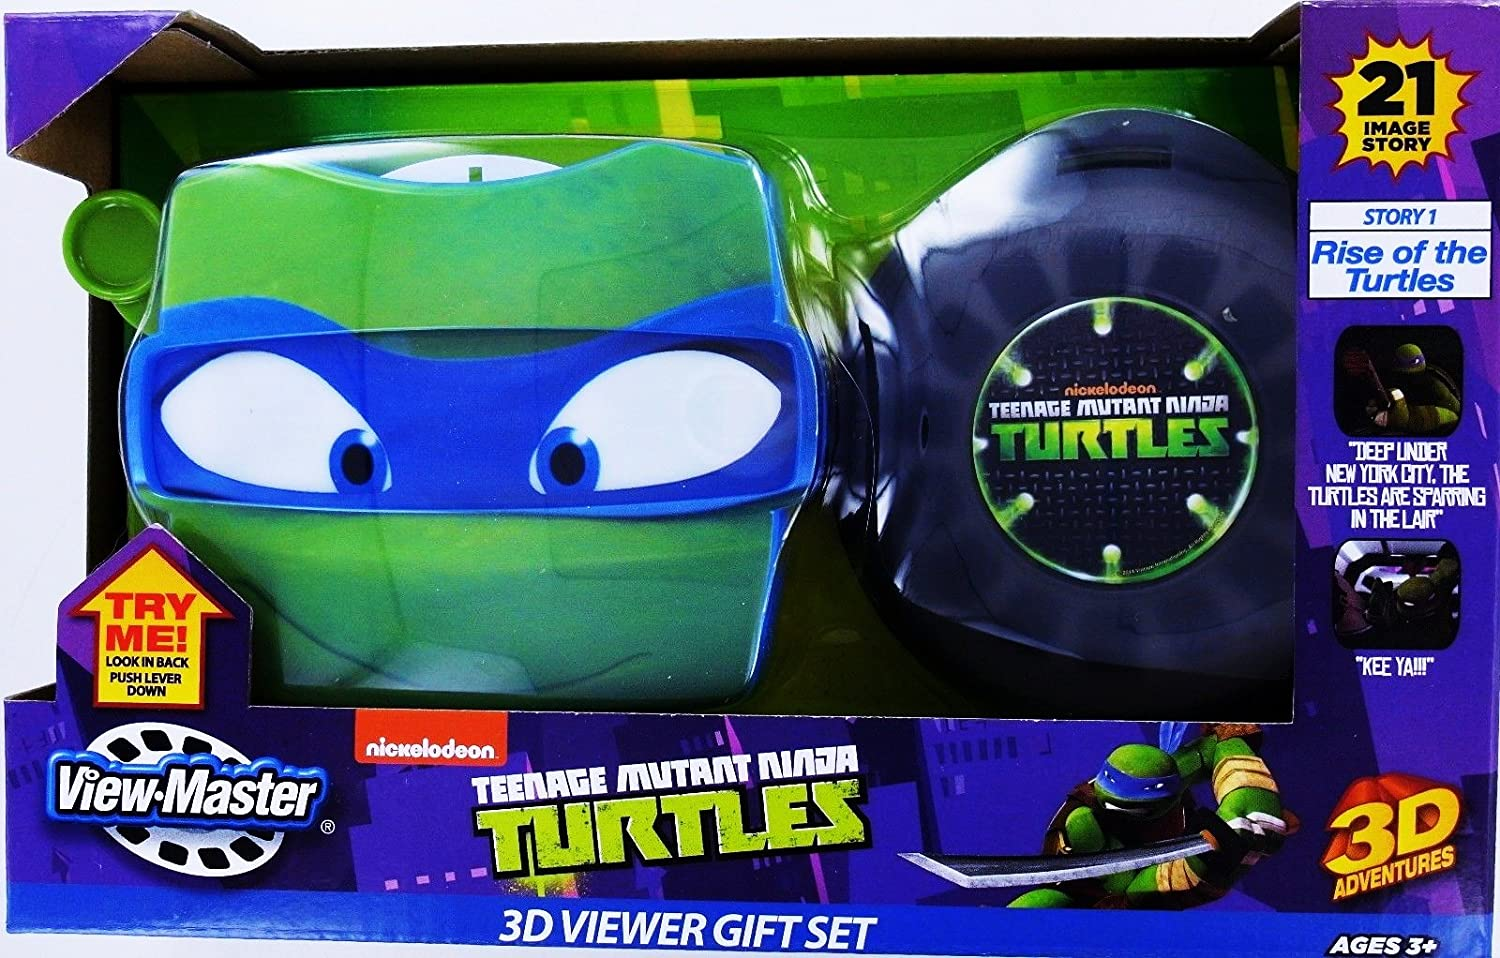 Amazon.com: TMNT Teenage Mutant Ninja Turtles View-Master ...